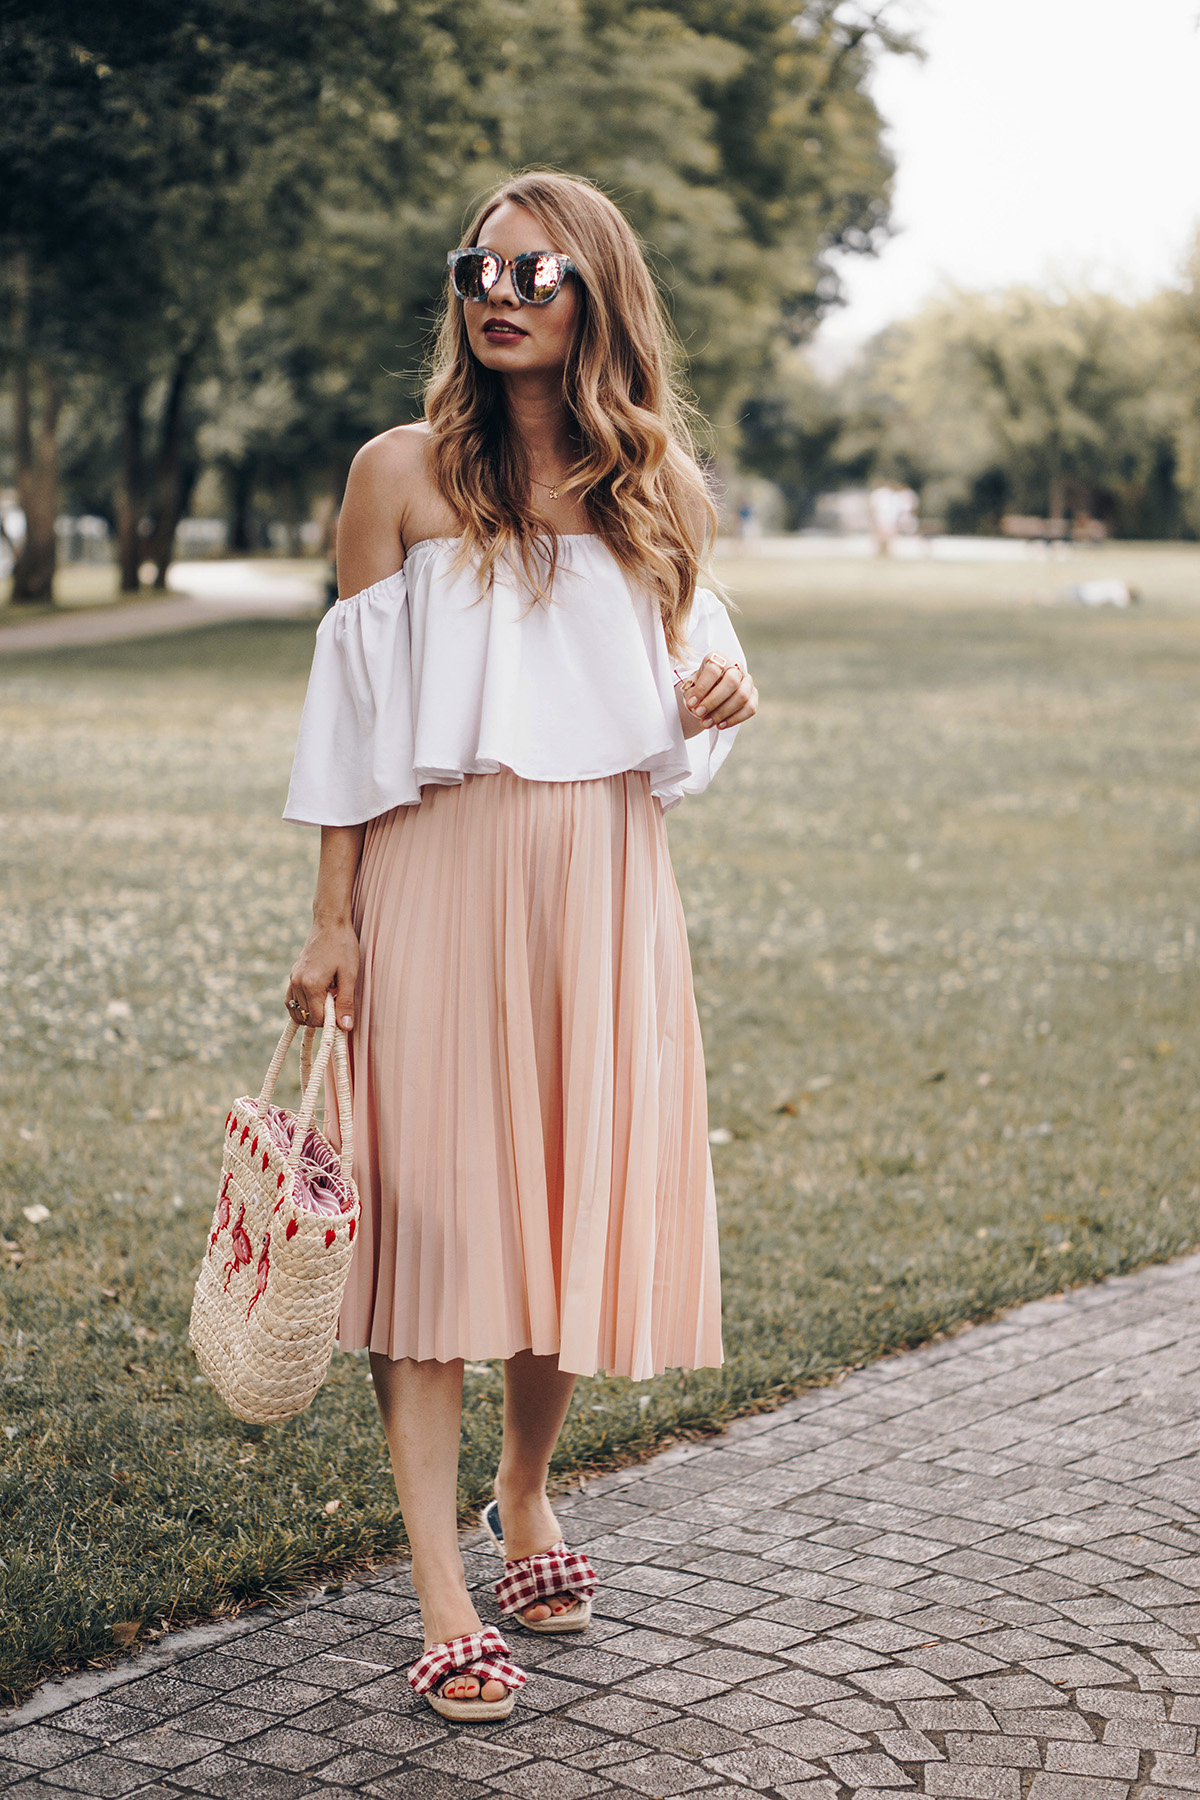 0ecc081f4616 Picnic outfit - the three must haves  a midi skirt